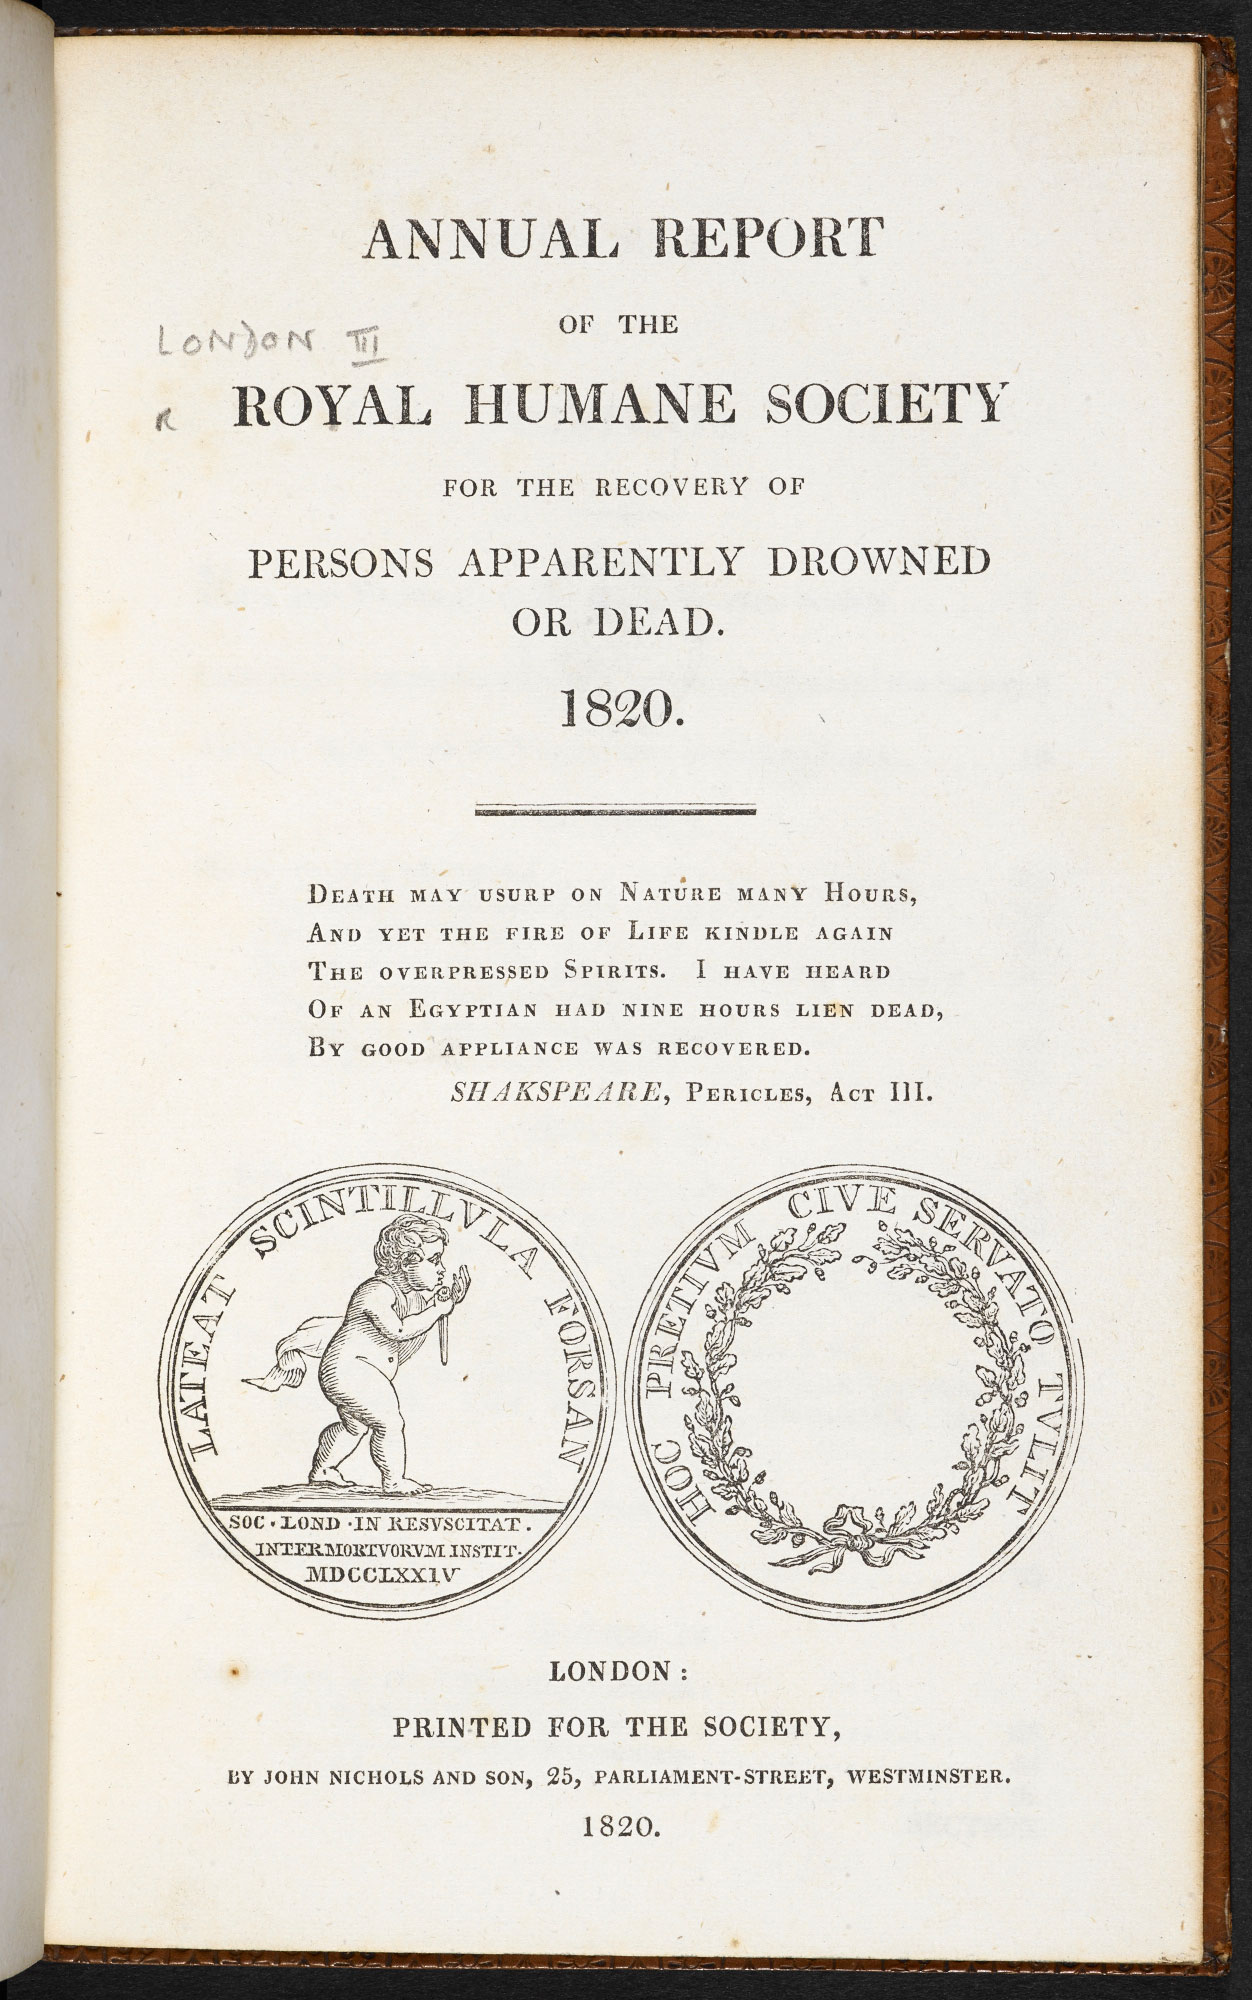 Annual report of the Royal Humane Society concerning drowned persons